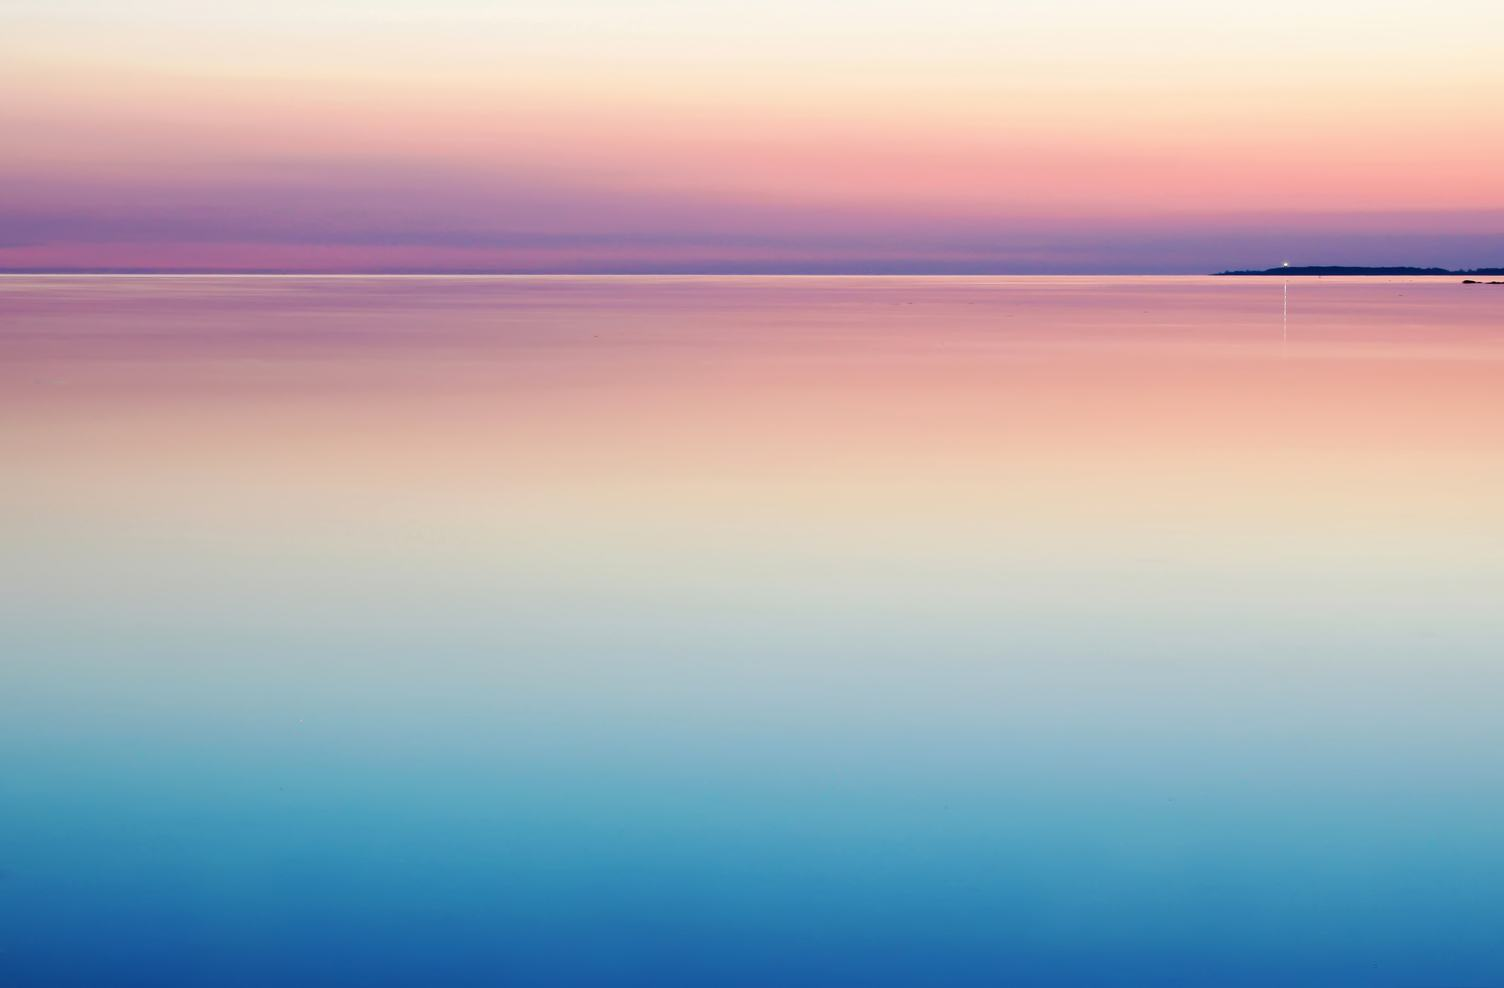 Colorful Background with Sea Sunset